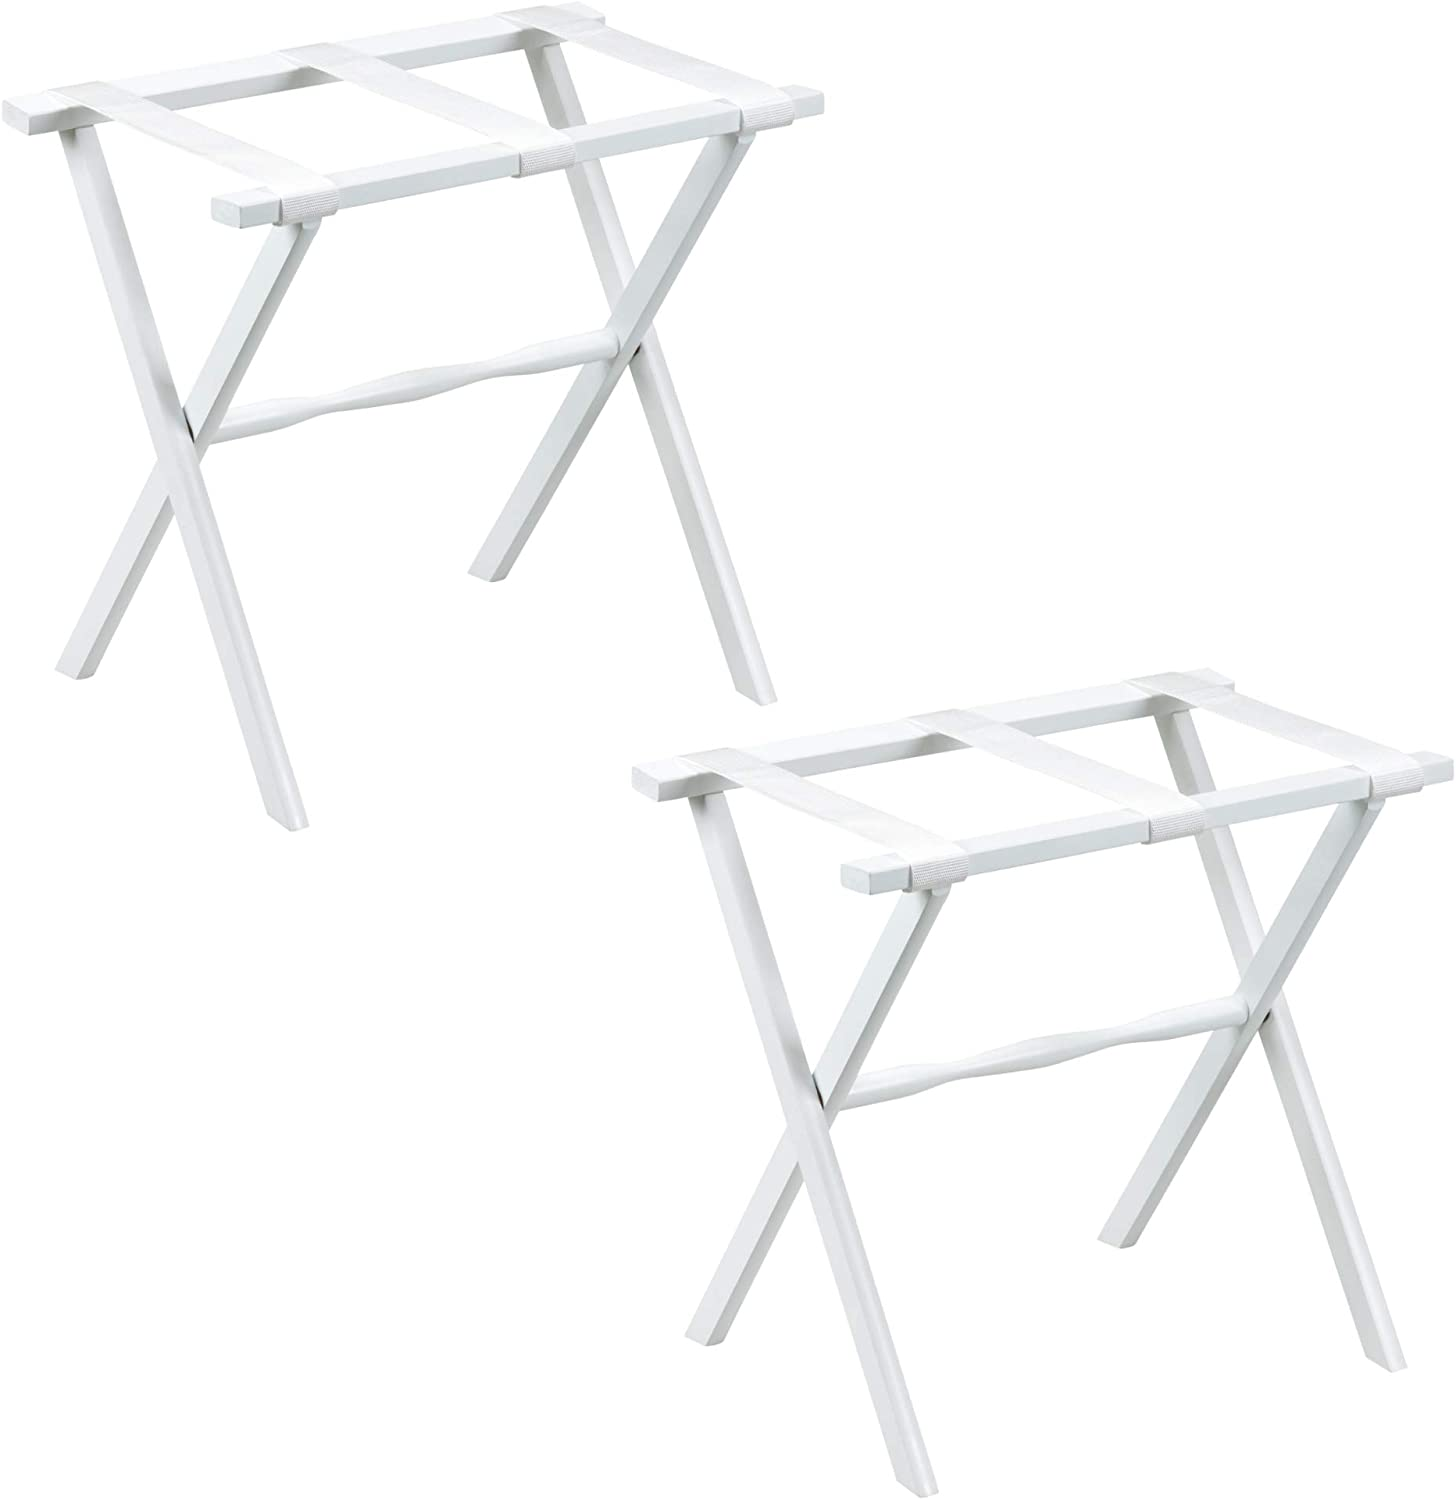 Gate House Furniture 2-Pack White Straight Leg Wood Luggage Rack 3 White Nylon Straps